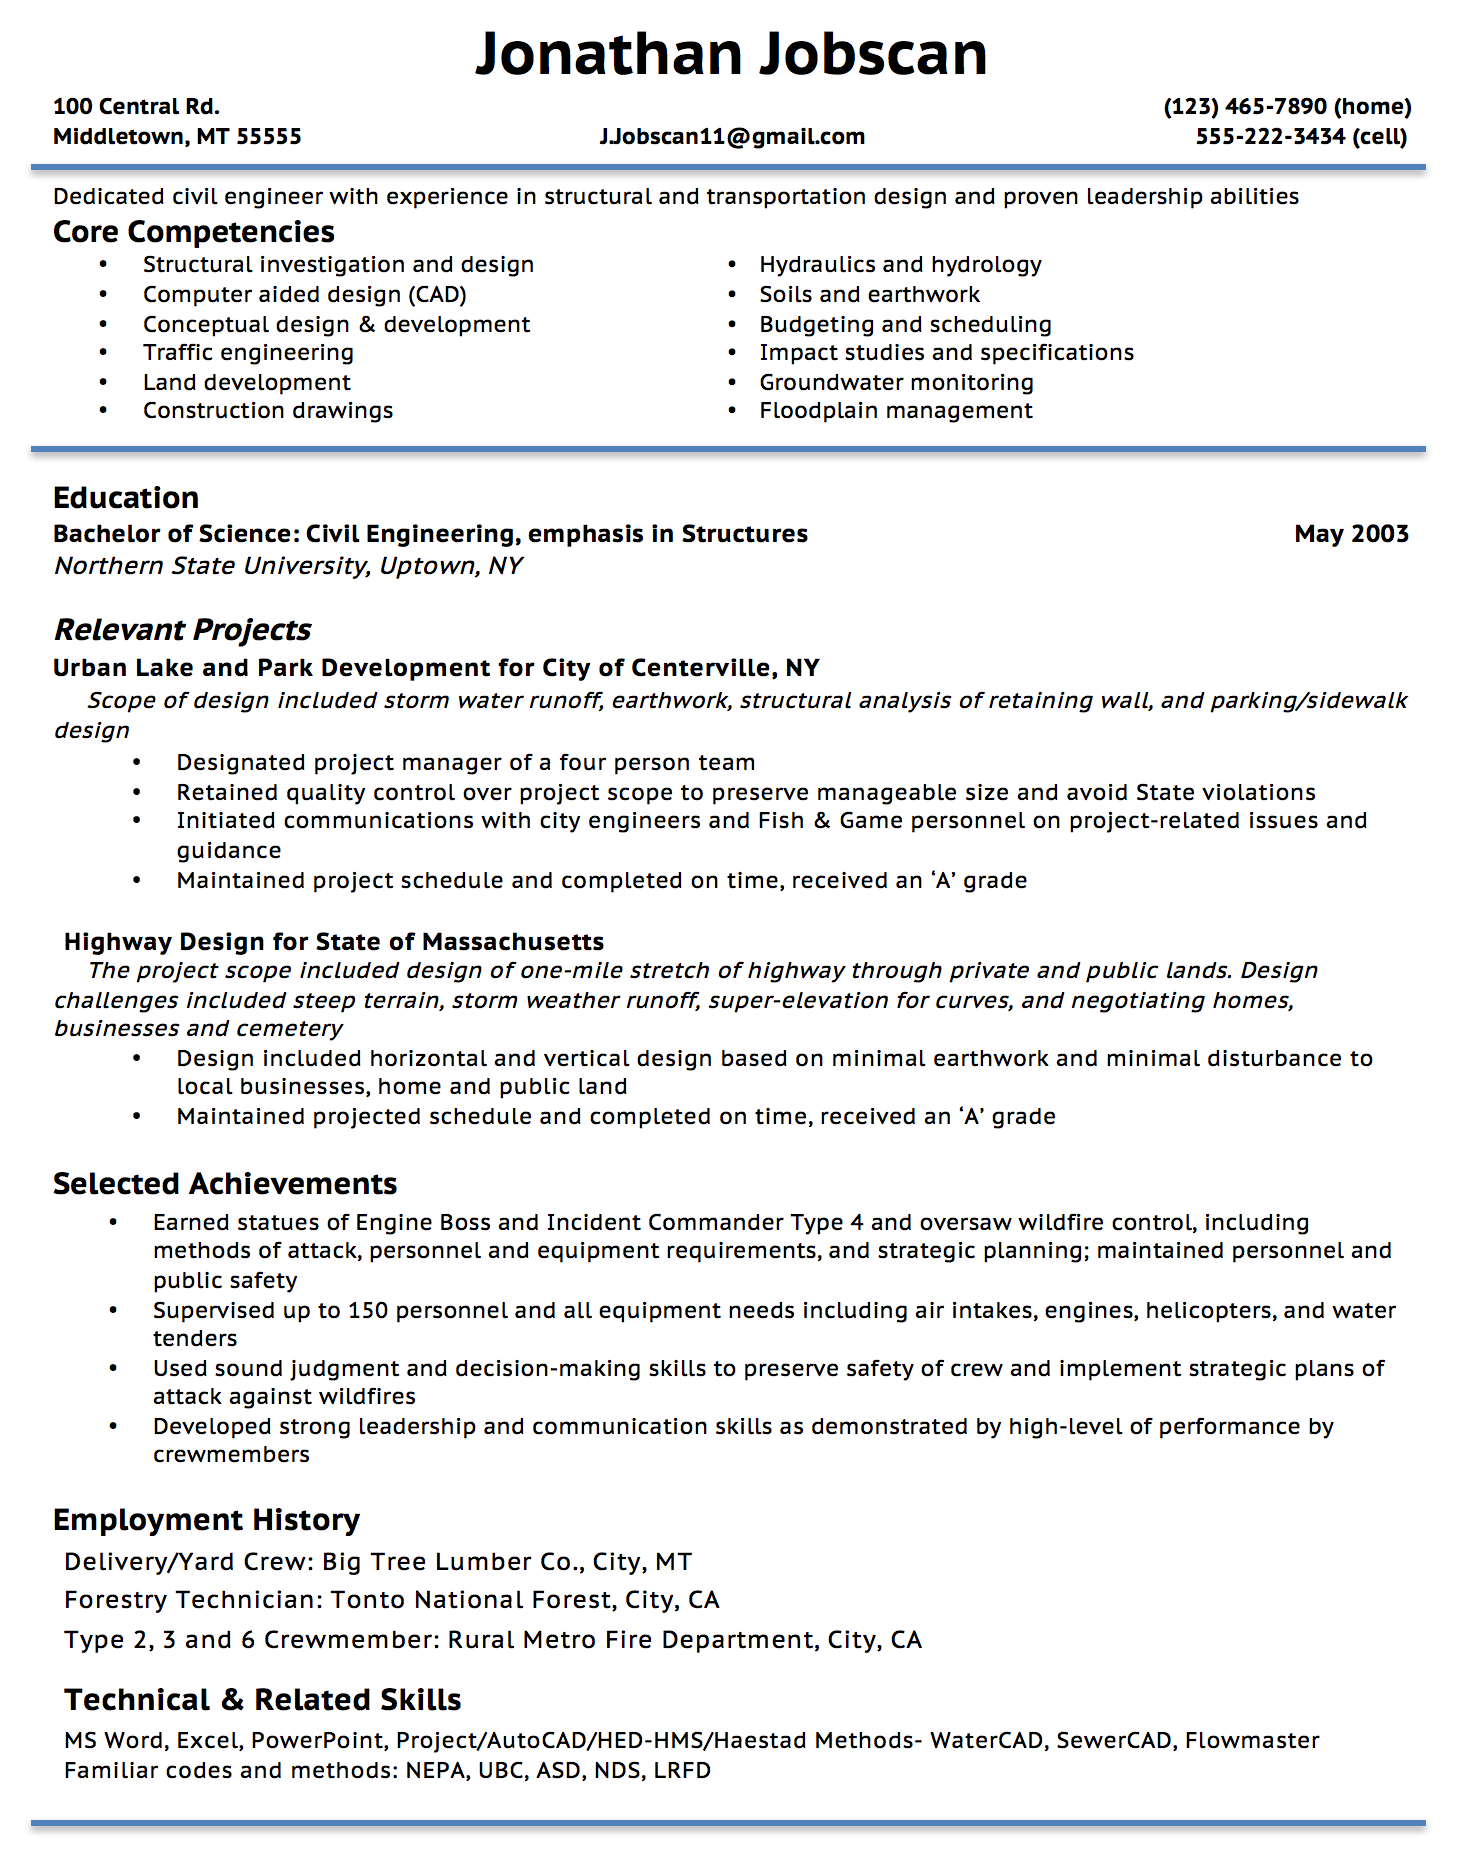 Opposenewapstandardsus  Seductive Resume Writing Guide  Jobscan With Foxy Example Of A Functional Resume Format With Endearing Resume References Upon Request Also Lpn Job Description For Resume In Addition Manufacturing Resume Examples And How To Make A Resume On Microsoft Word  As Well As Resume Writers Houston Additionally Help Make A Resume From Jobscanco With Opposenewapstandardsus  Foxy Resume Writing Guide  Jobscan With Endearing Example Of A Functional Resume Format And Seductive Resume References Upon Request Also Lpn Job Description For Resume In Addition Manufacturing Resume Examples From Jobscanco